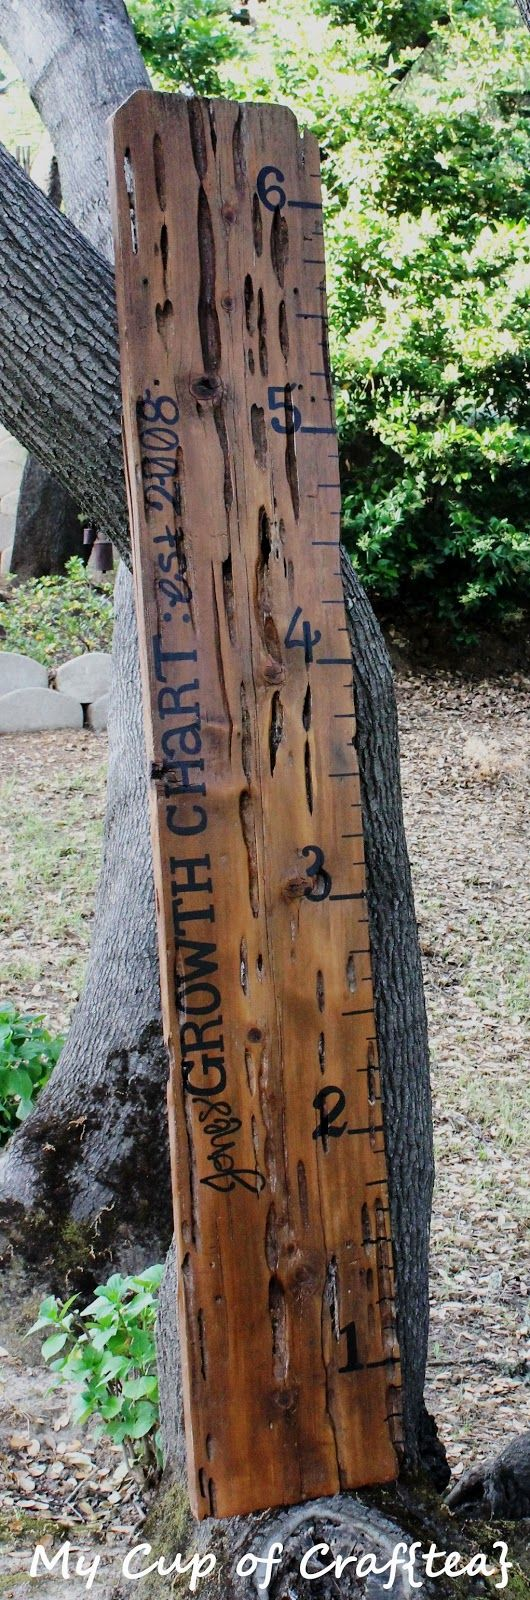 Hand-painted ruler growth chart from an old fence board <3